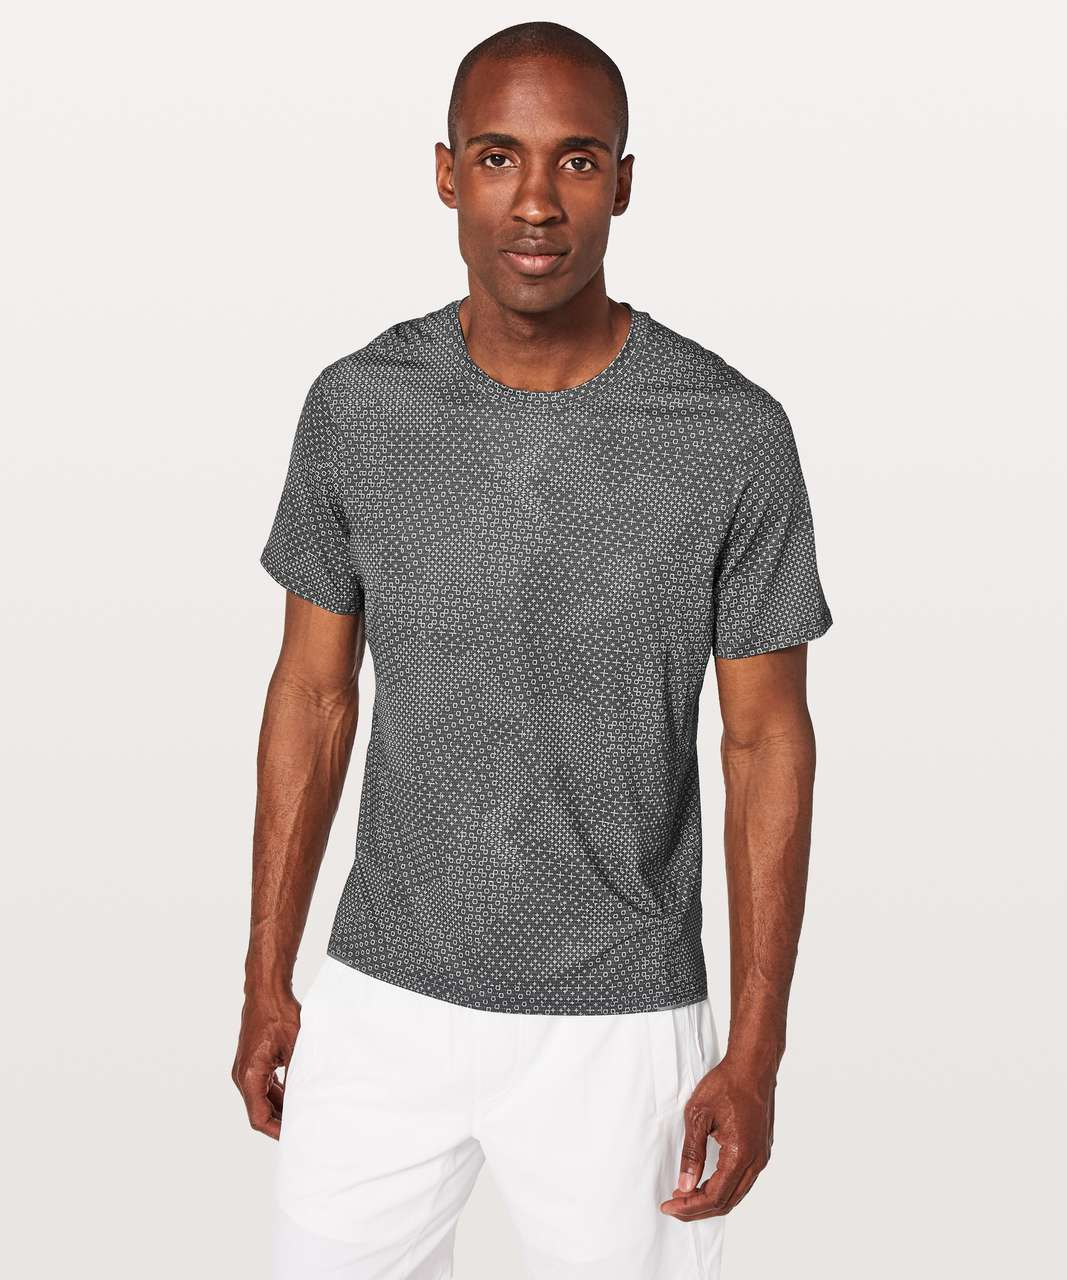 Lululemon Run Out Short Sleeve - Stitch Camo Ice Grey Deep Coal